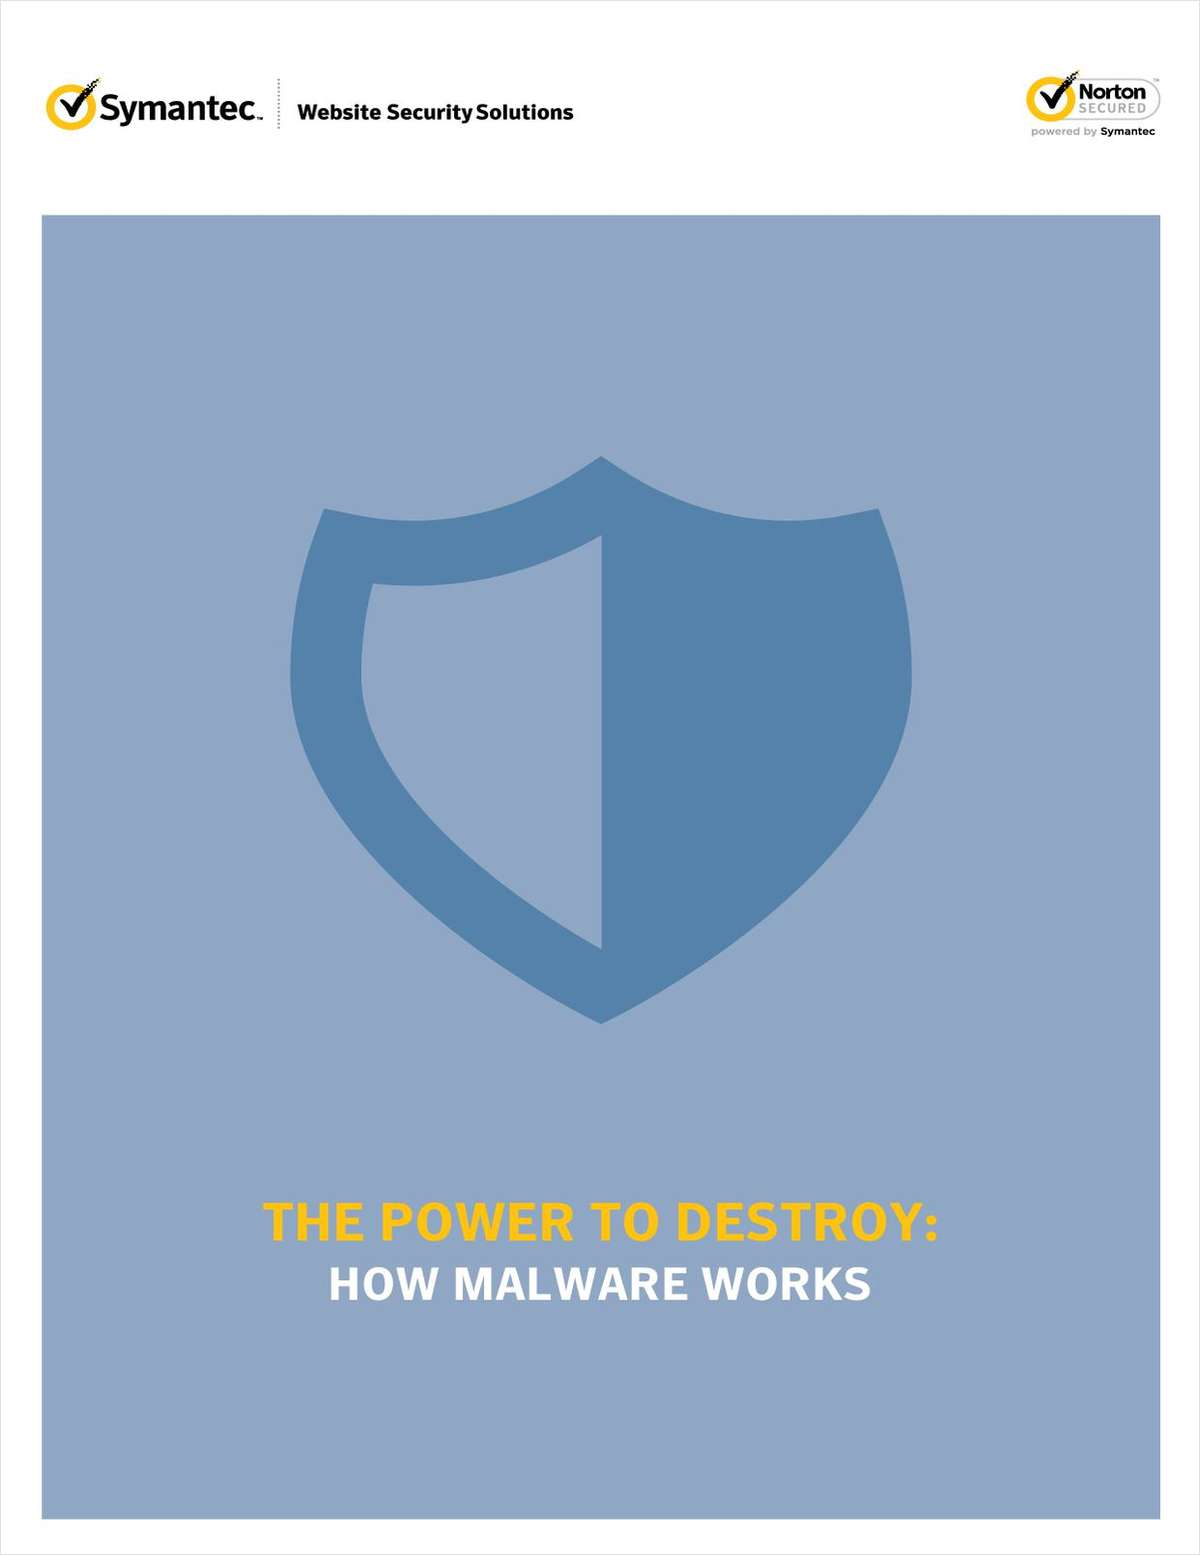 The Power to Destroy: How Malware Works